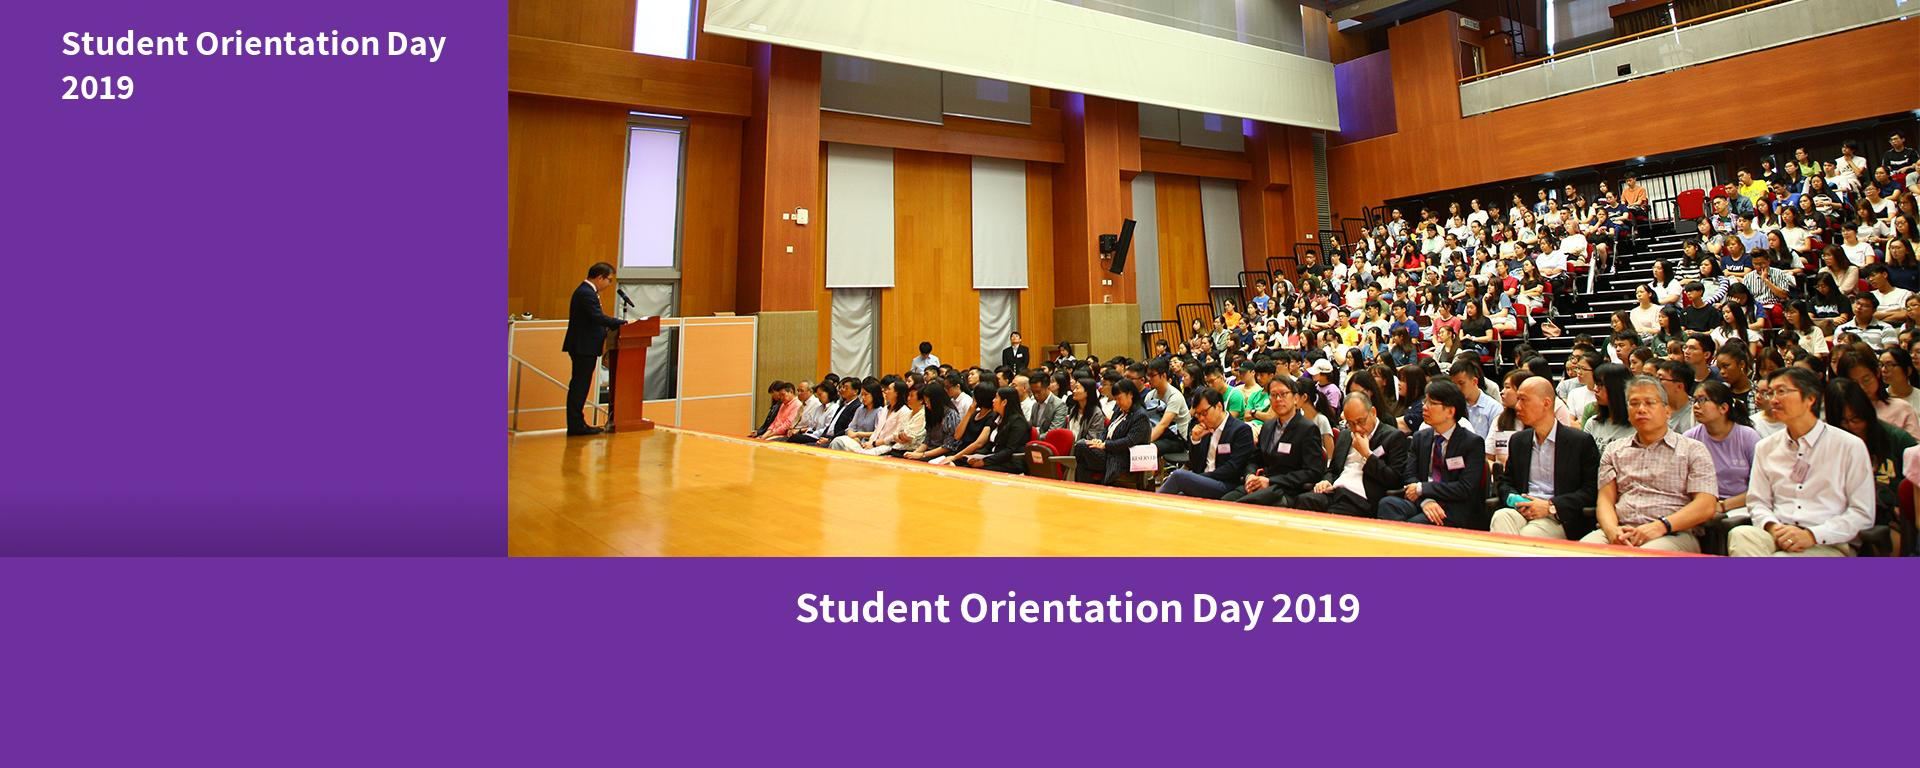 Student Orientation Day 2019